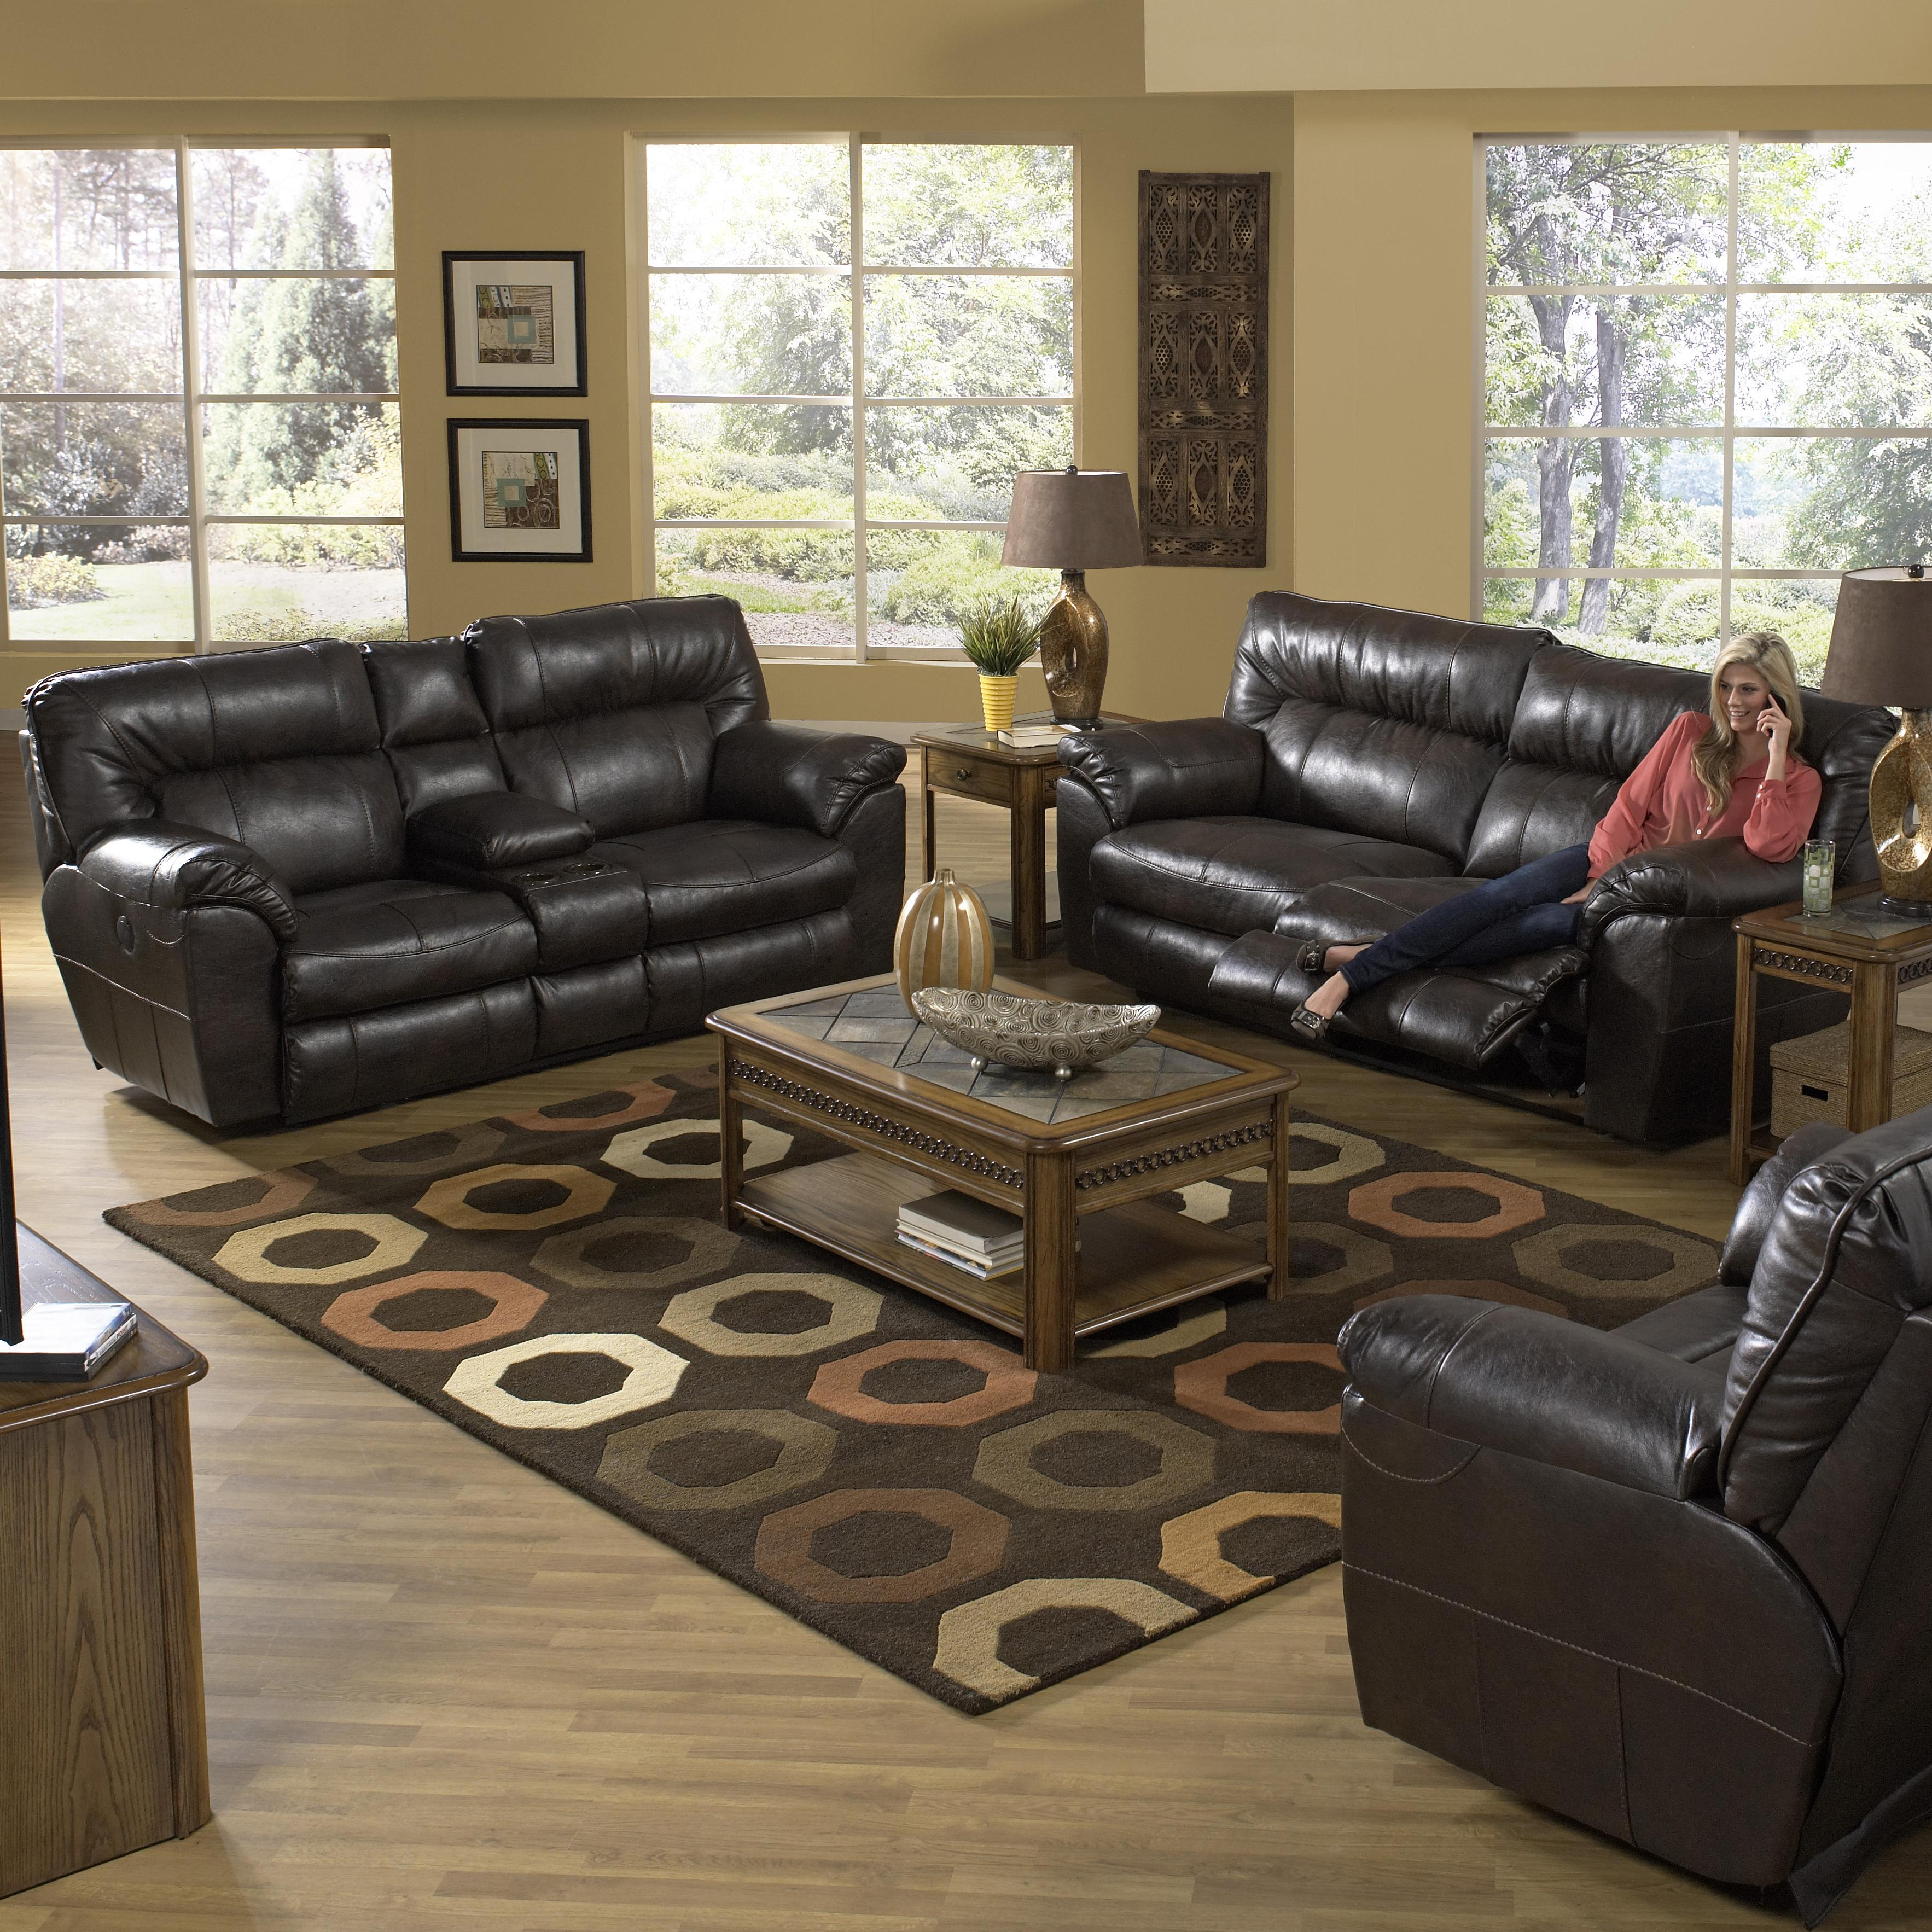 Catnapper MAVERICK Power Reclining Sectional Sofa With Left Console | EFO  Furniture Outlet | Reclining Sectional Sofas